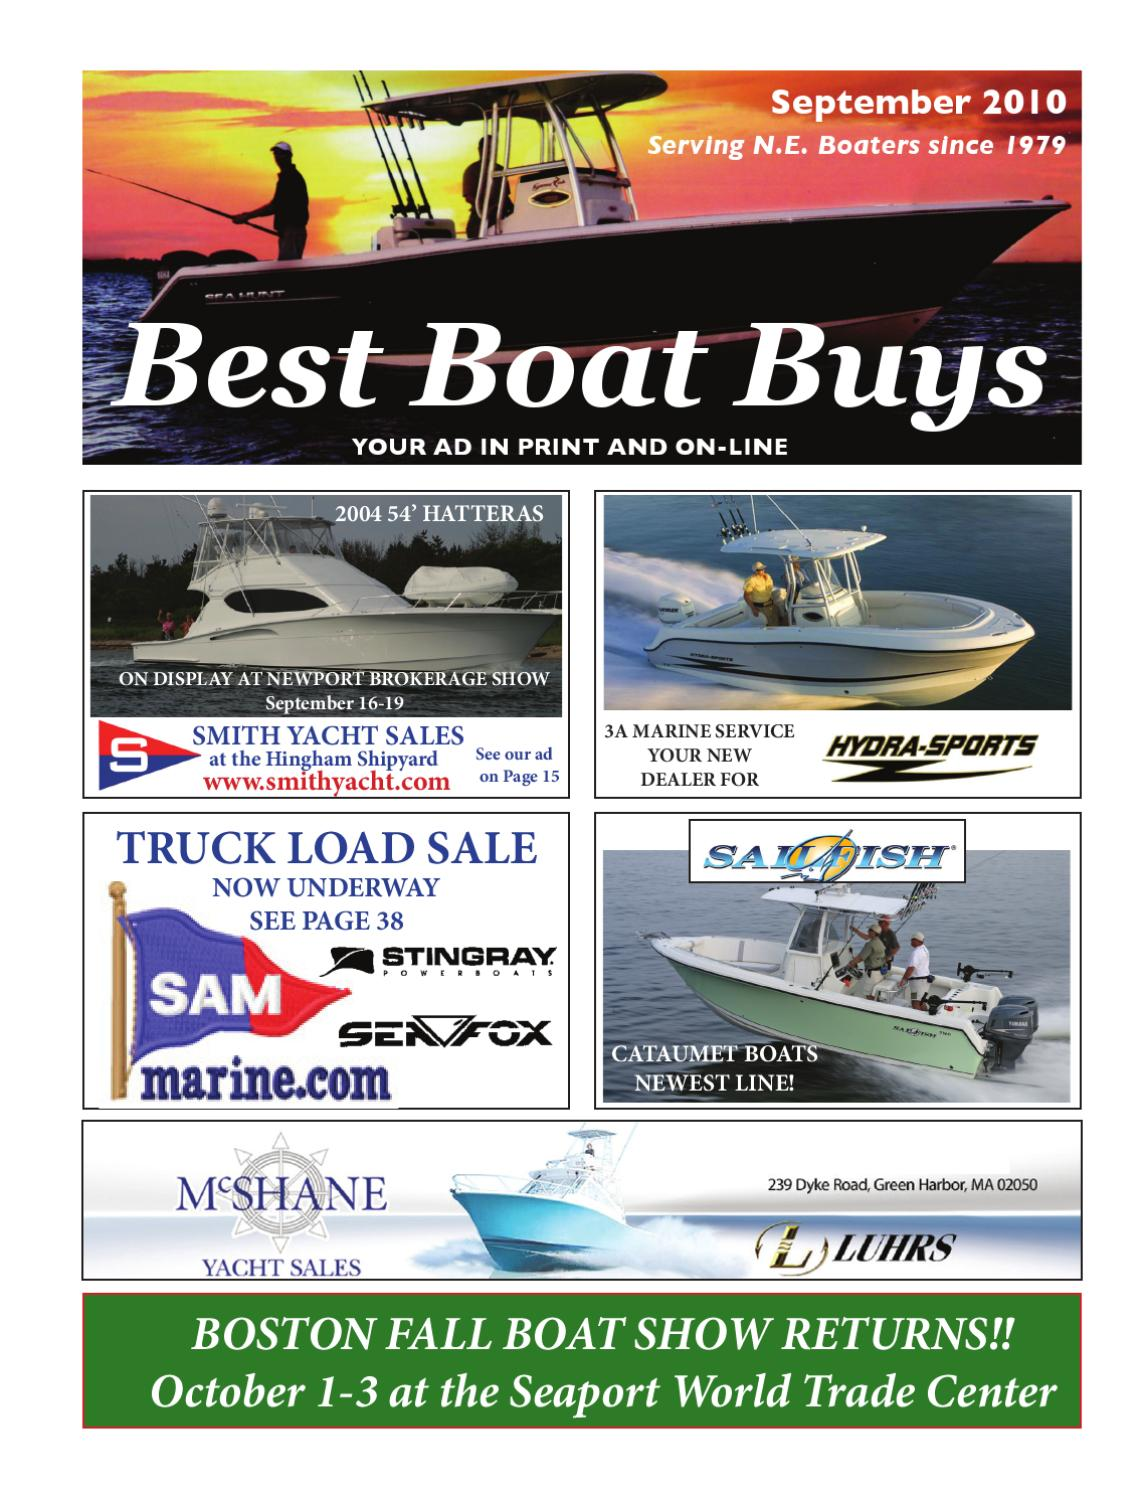 Best Boat Buys September Issue by David Jensen - issuu Wiring Diagrams Wellcraft Eclipse on